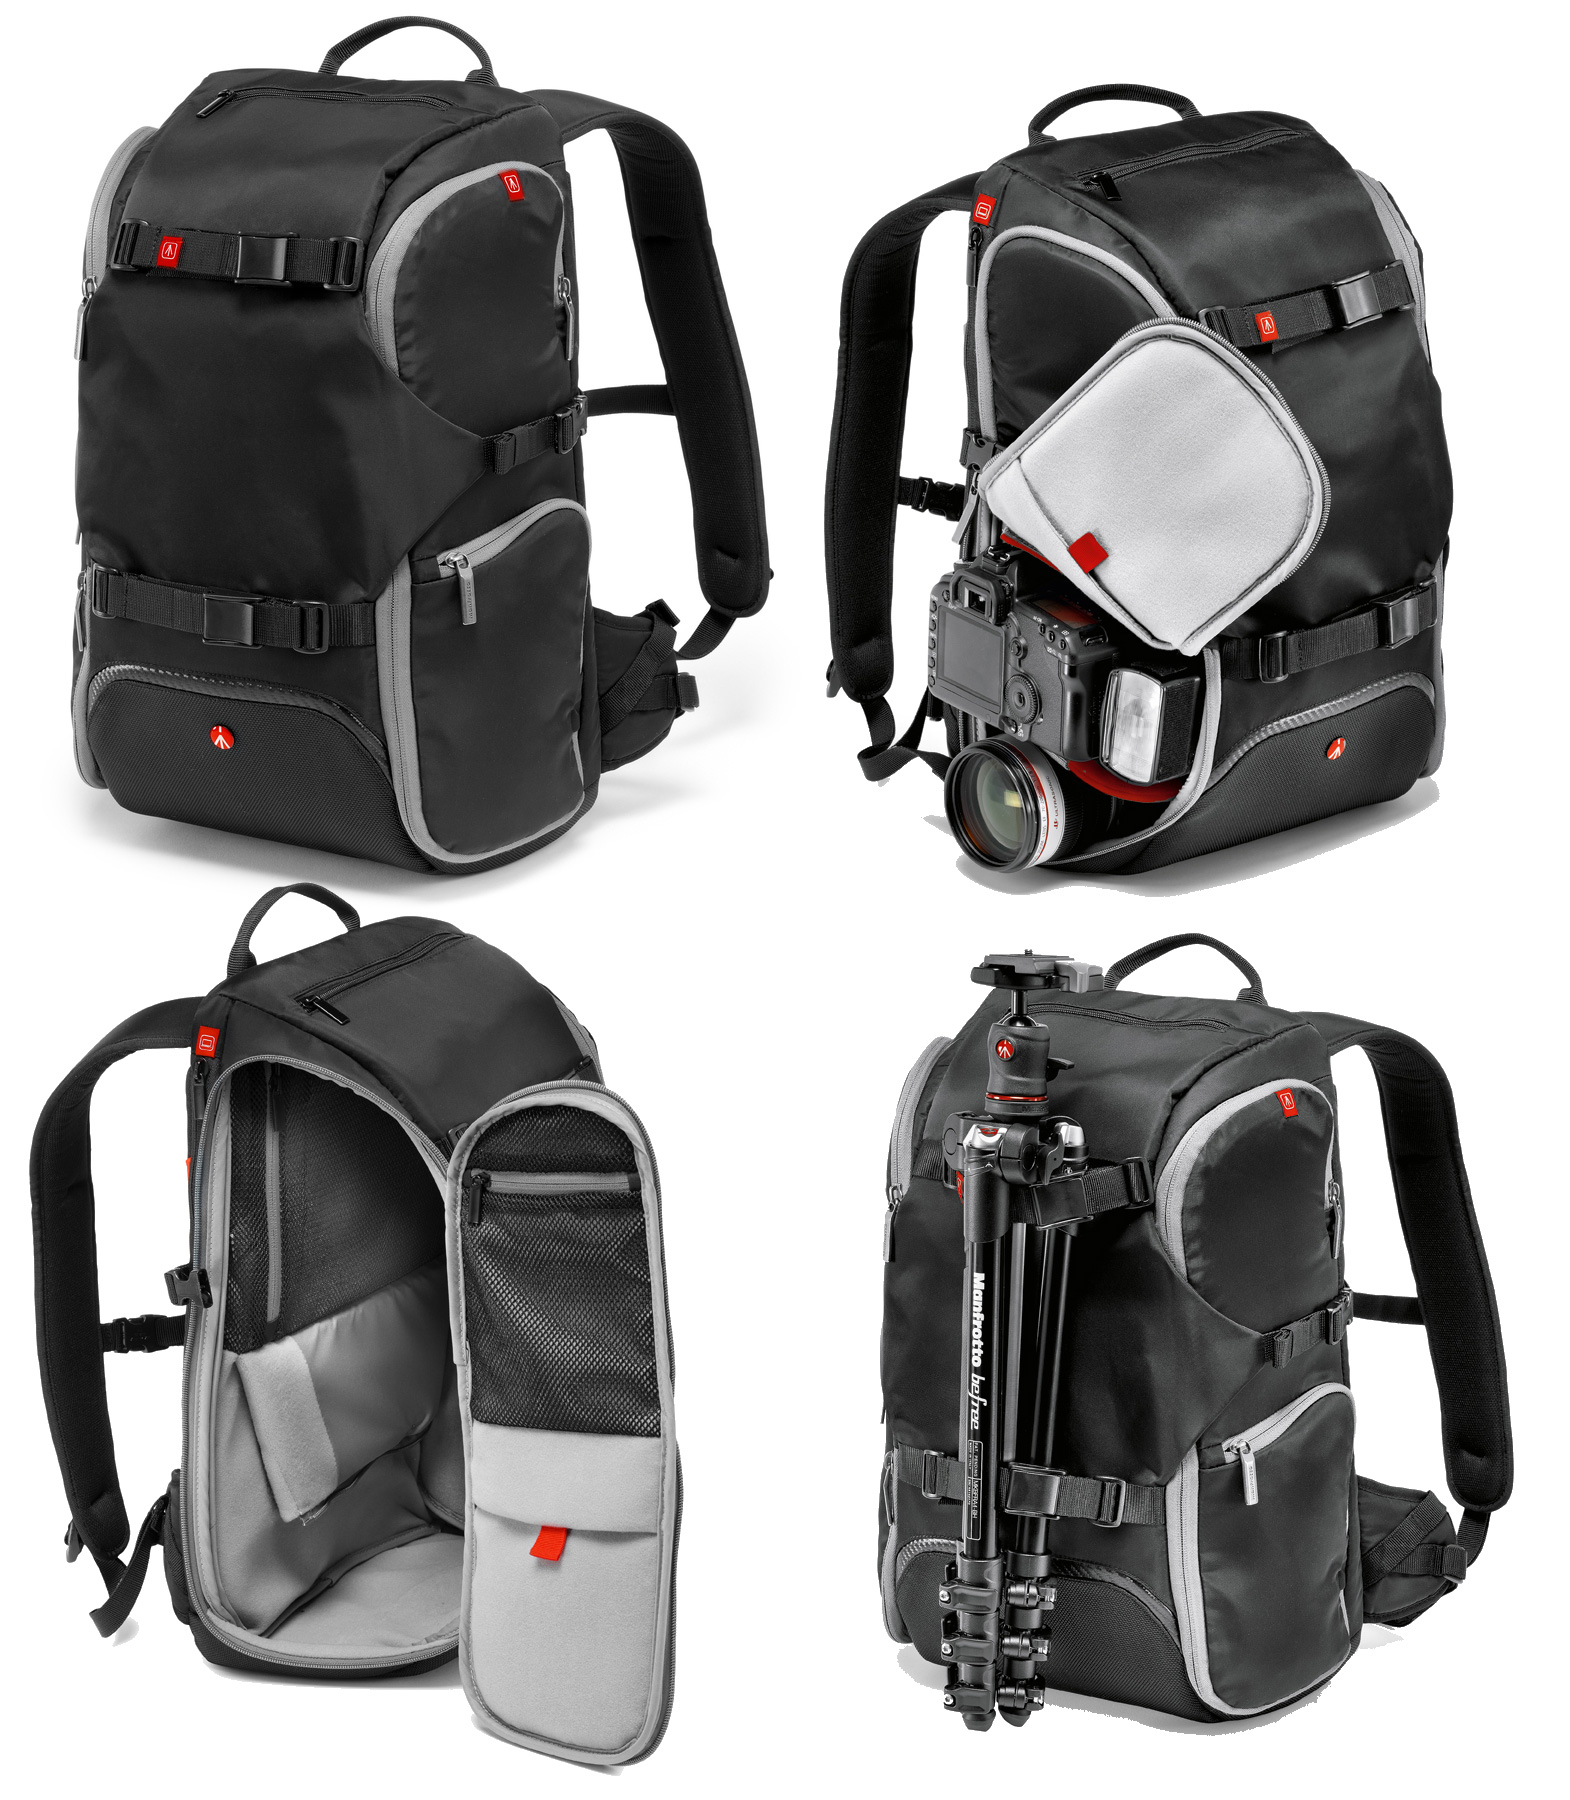 96ee6af2d1 Bags   Cases  Manfrotto Advanced Travel Backpack at Hunts Photo   Video